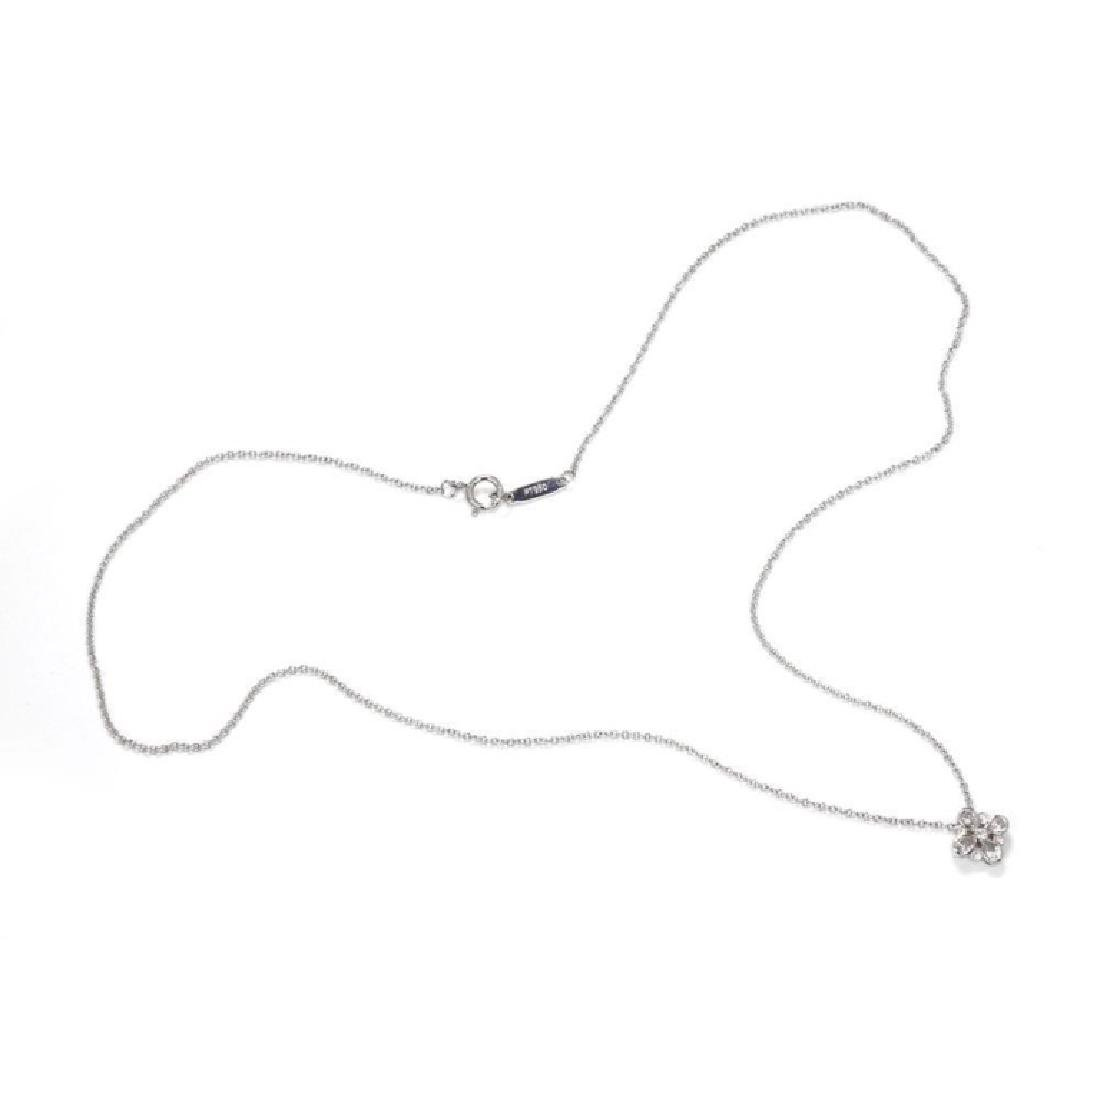 Tiffany&Co. Enchant Diamond Platinum Necklace - 2